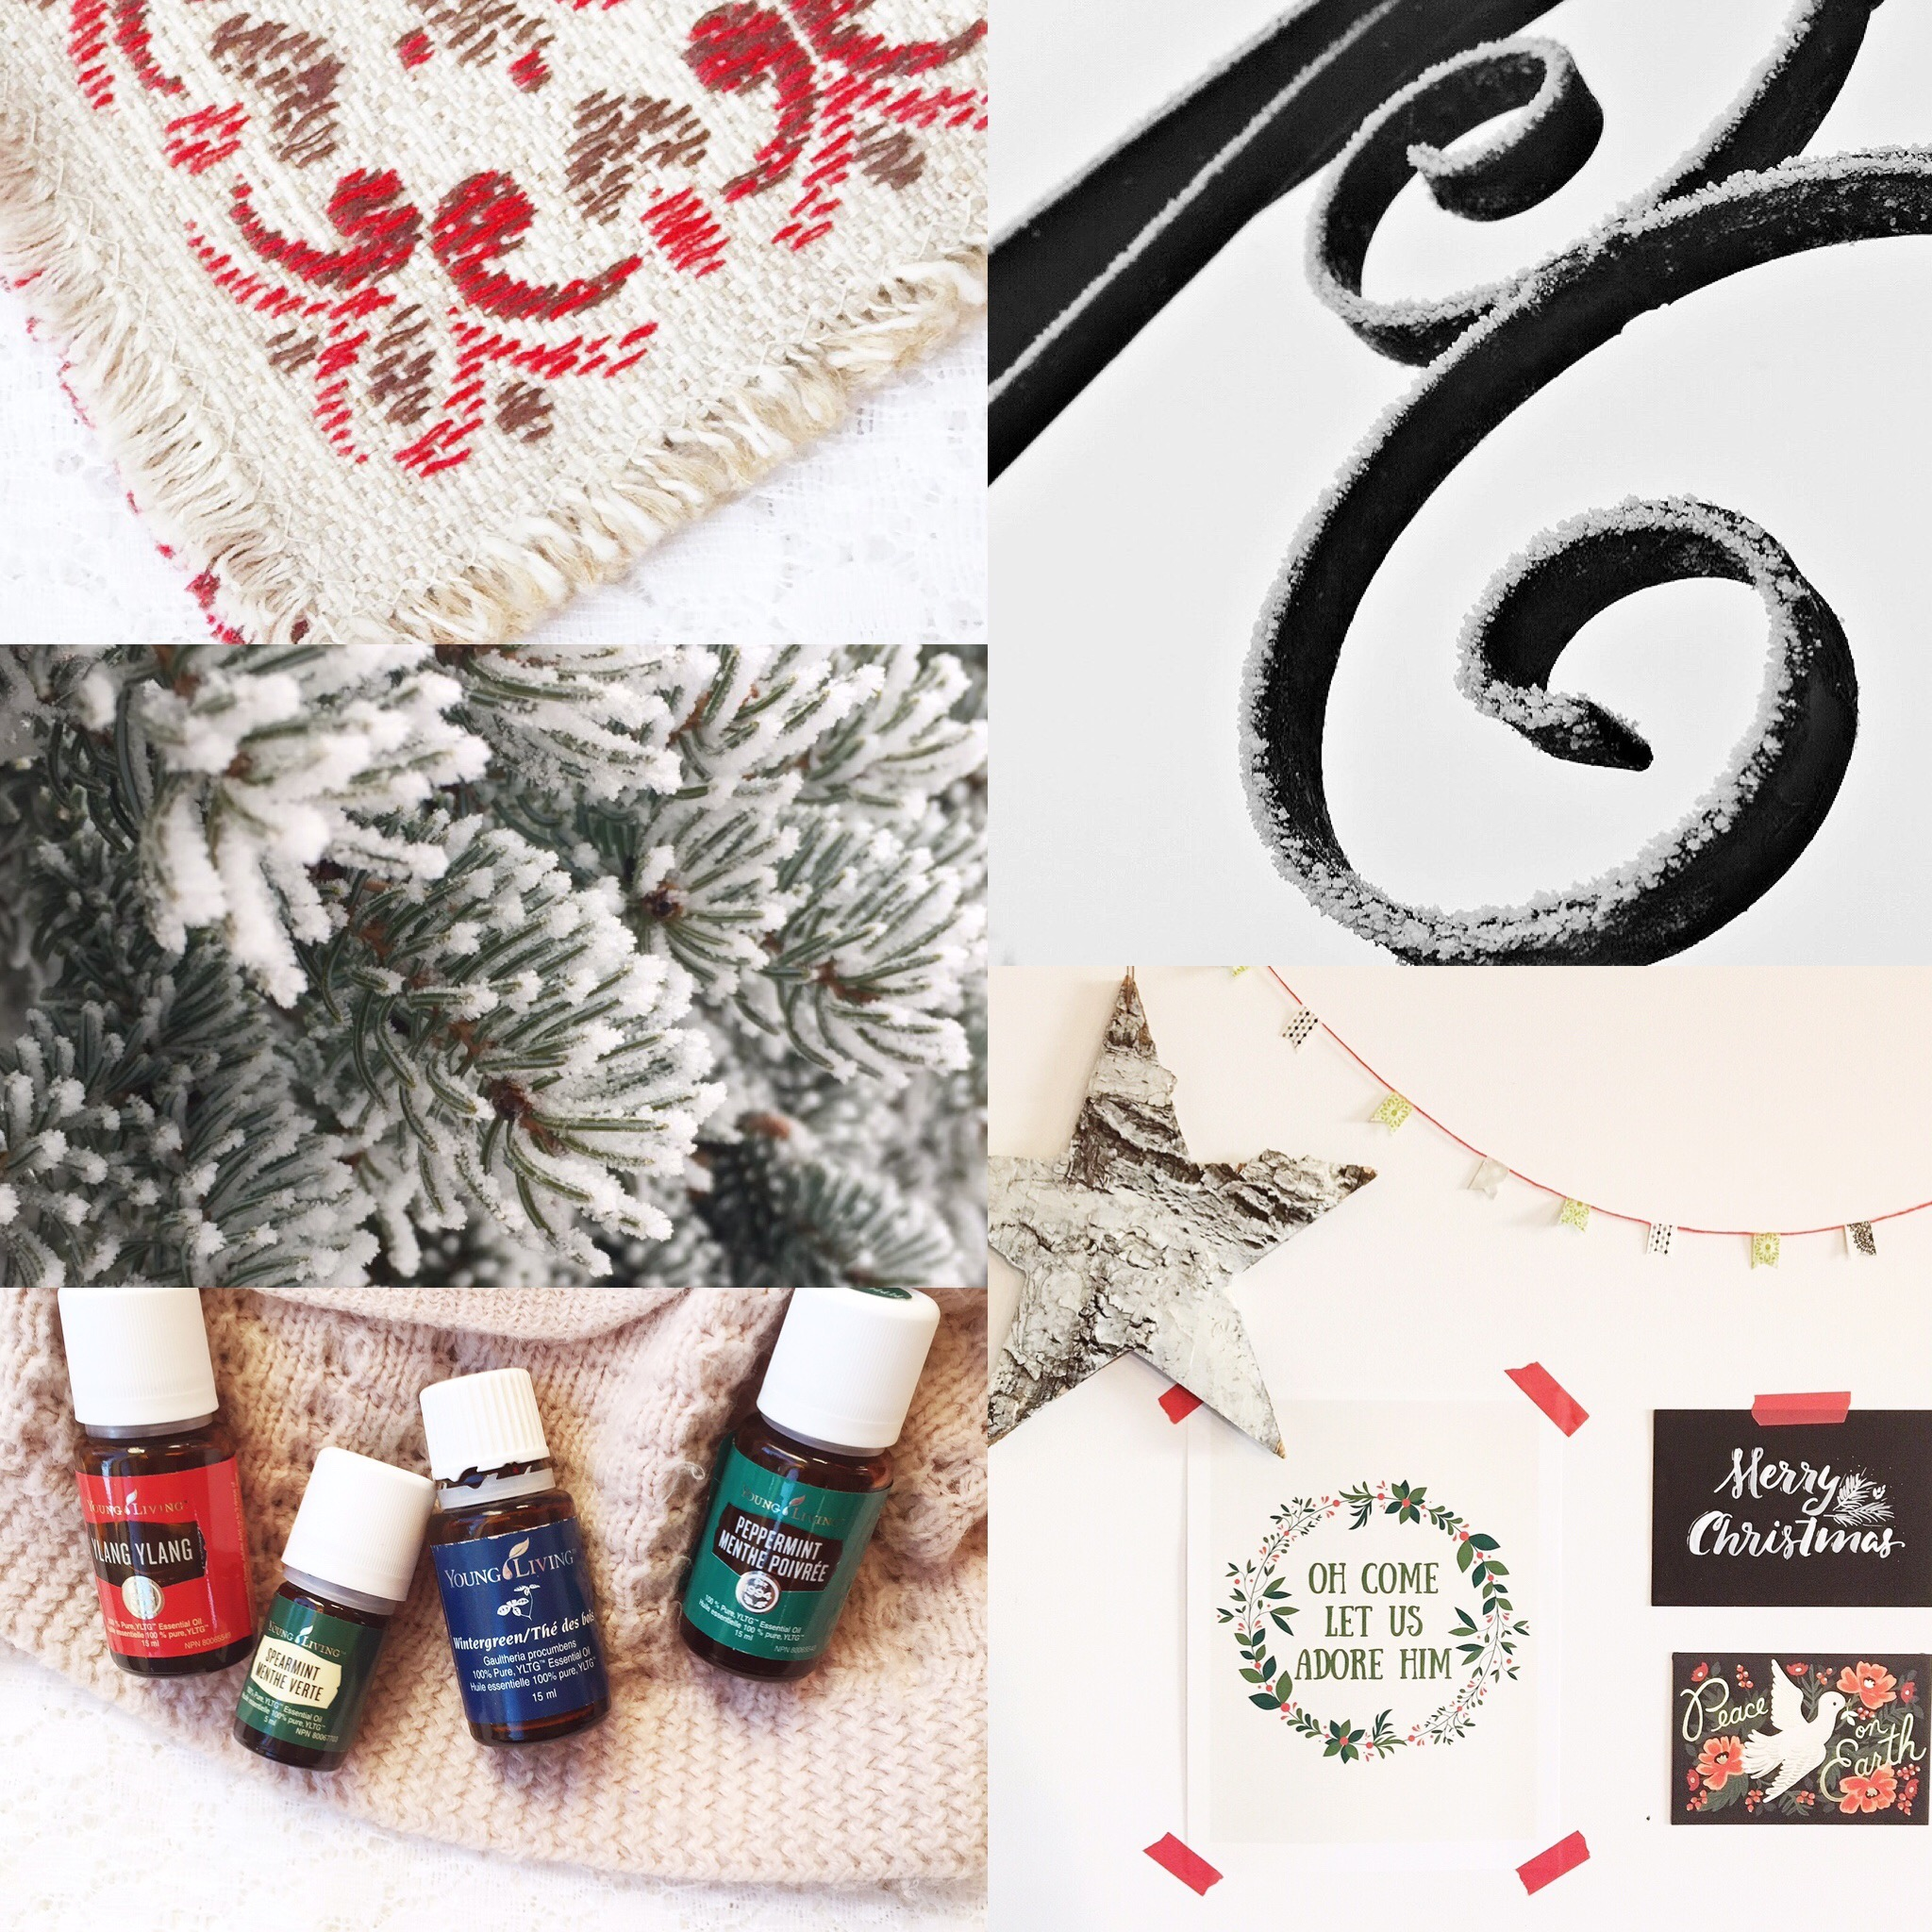 Weekly Color Inspiration: All Is Calm - Christmas Inspo in Red, Green and Black